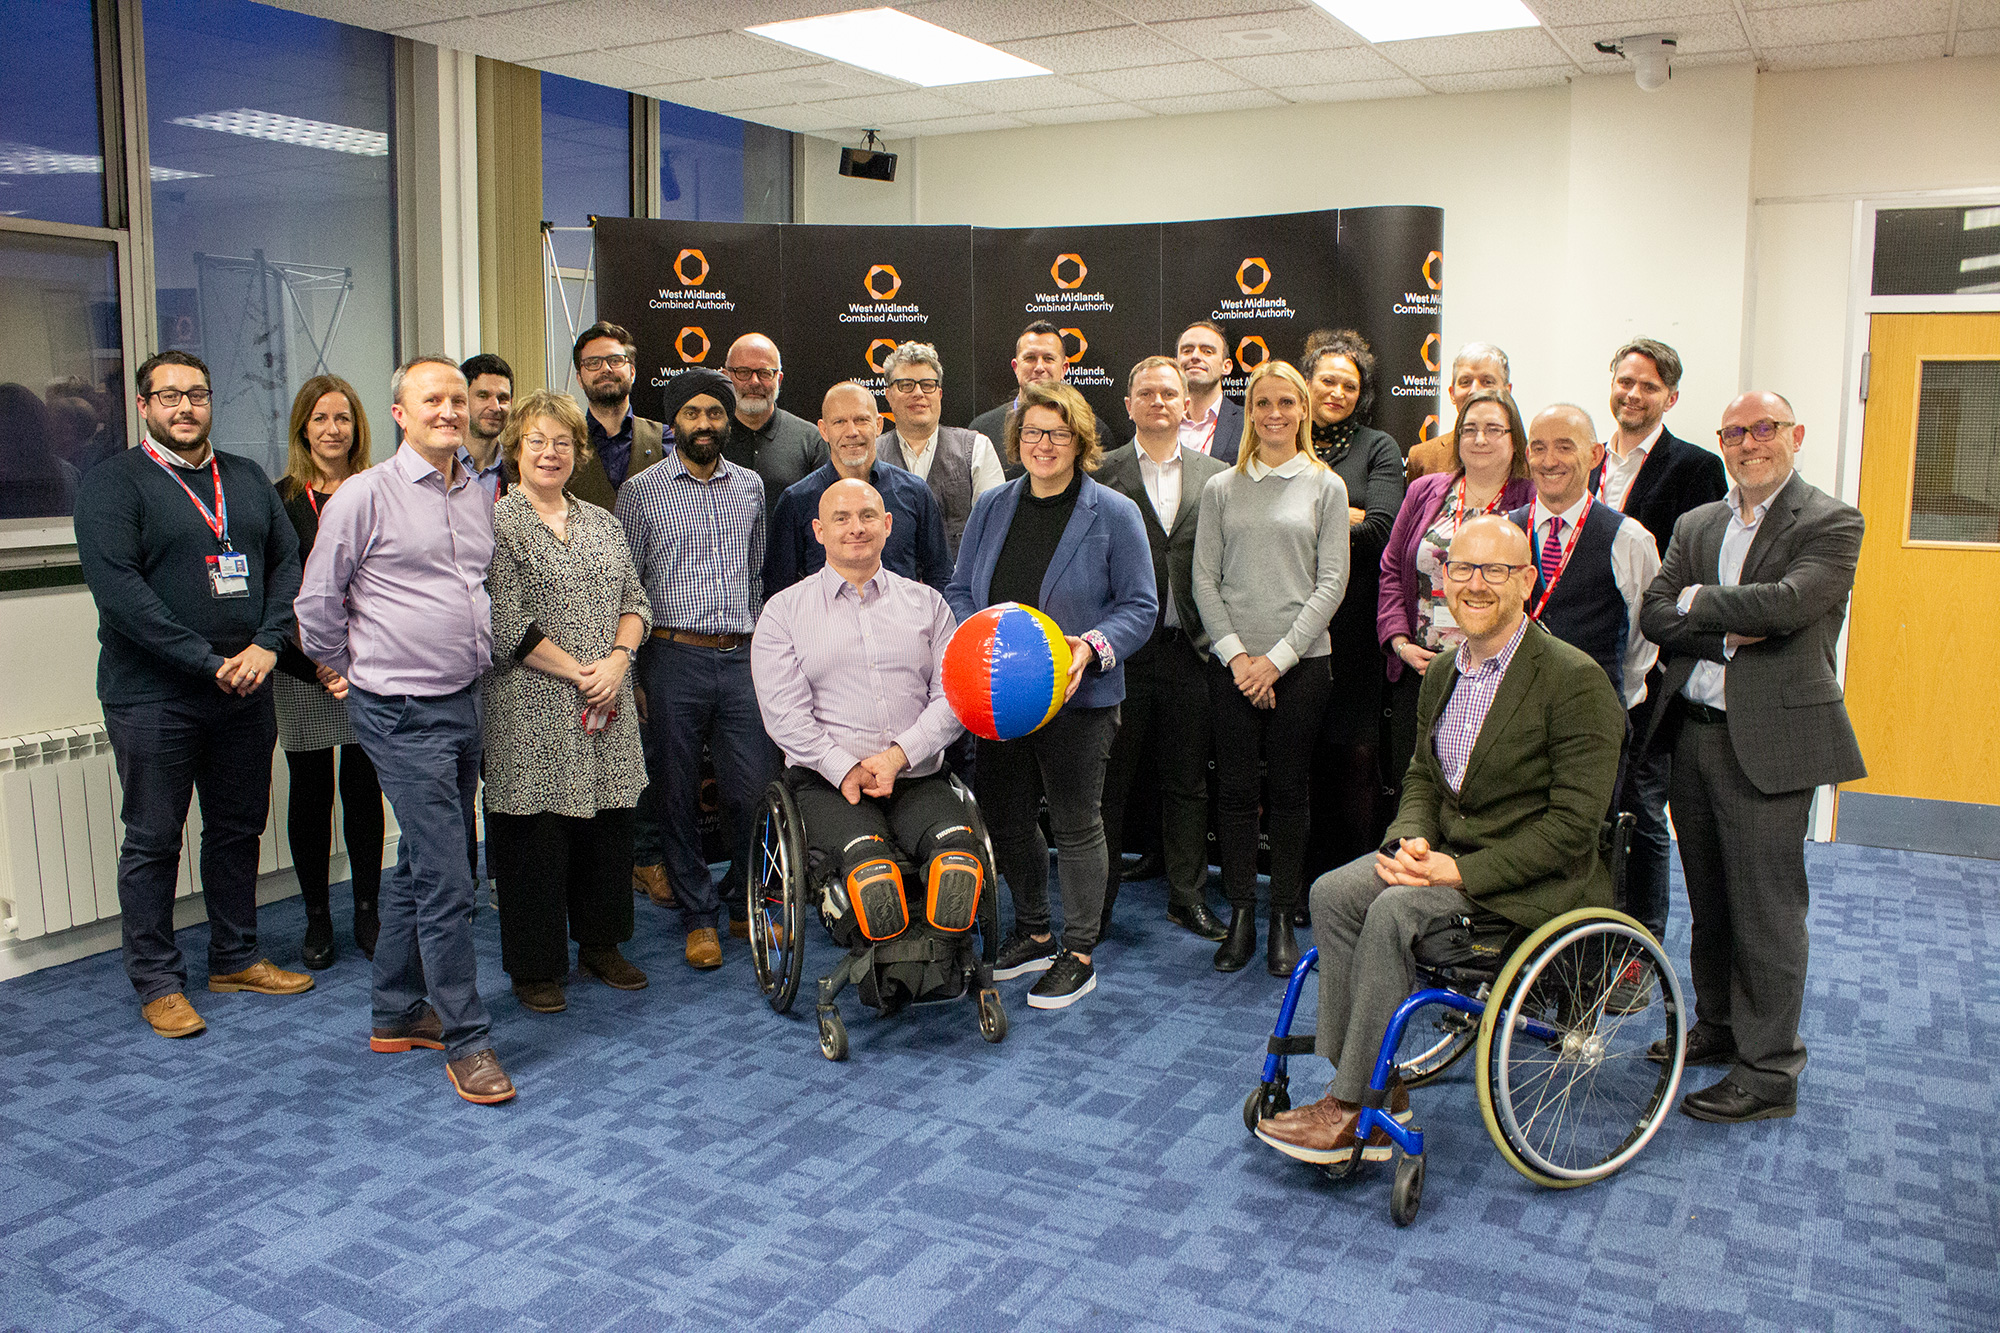 WMCA leads partnership to boost the region's fitness and activity levels